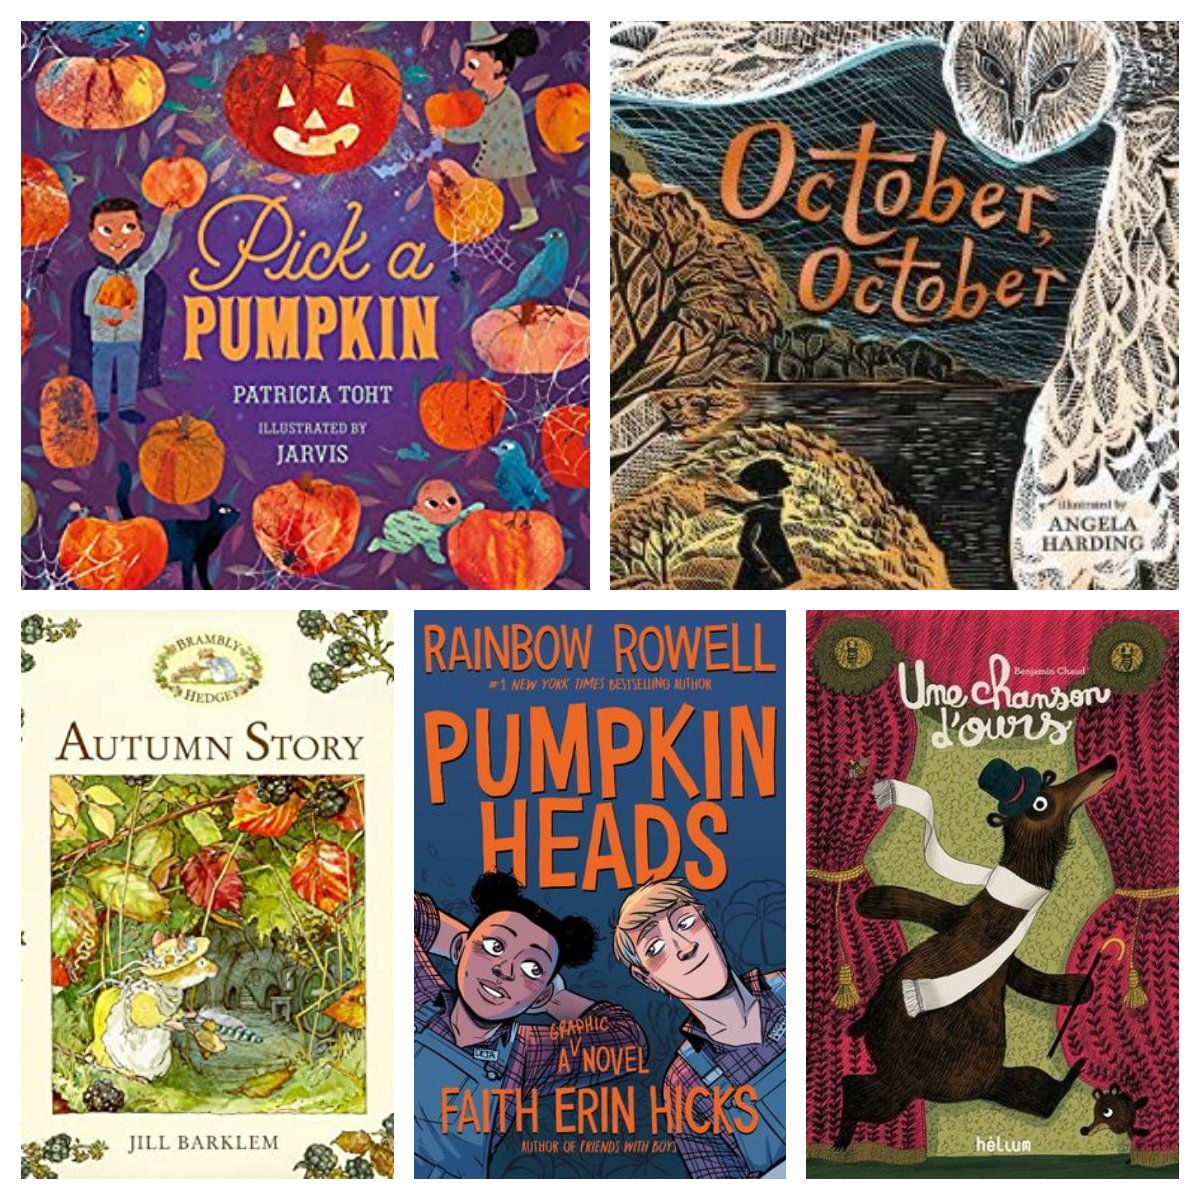 I love reading with the seasons. My autumn selections happen to be all children's and YA titles this time. Reviews on my blog today: https://t.co/i8W2w1fR5S https://t.co/xSxndSSQ2N